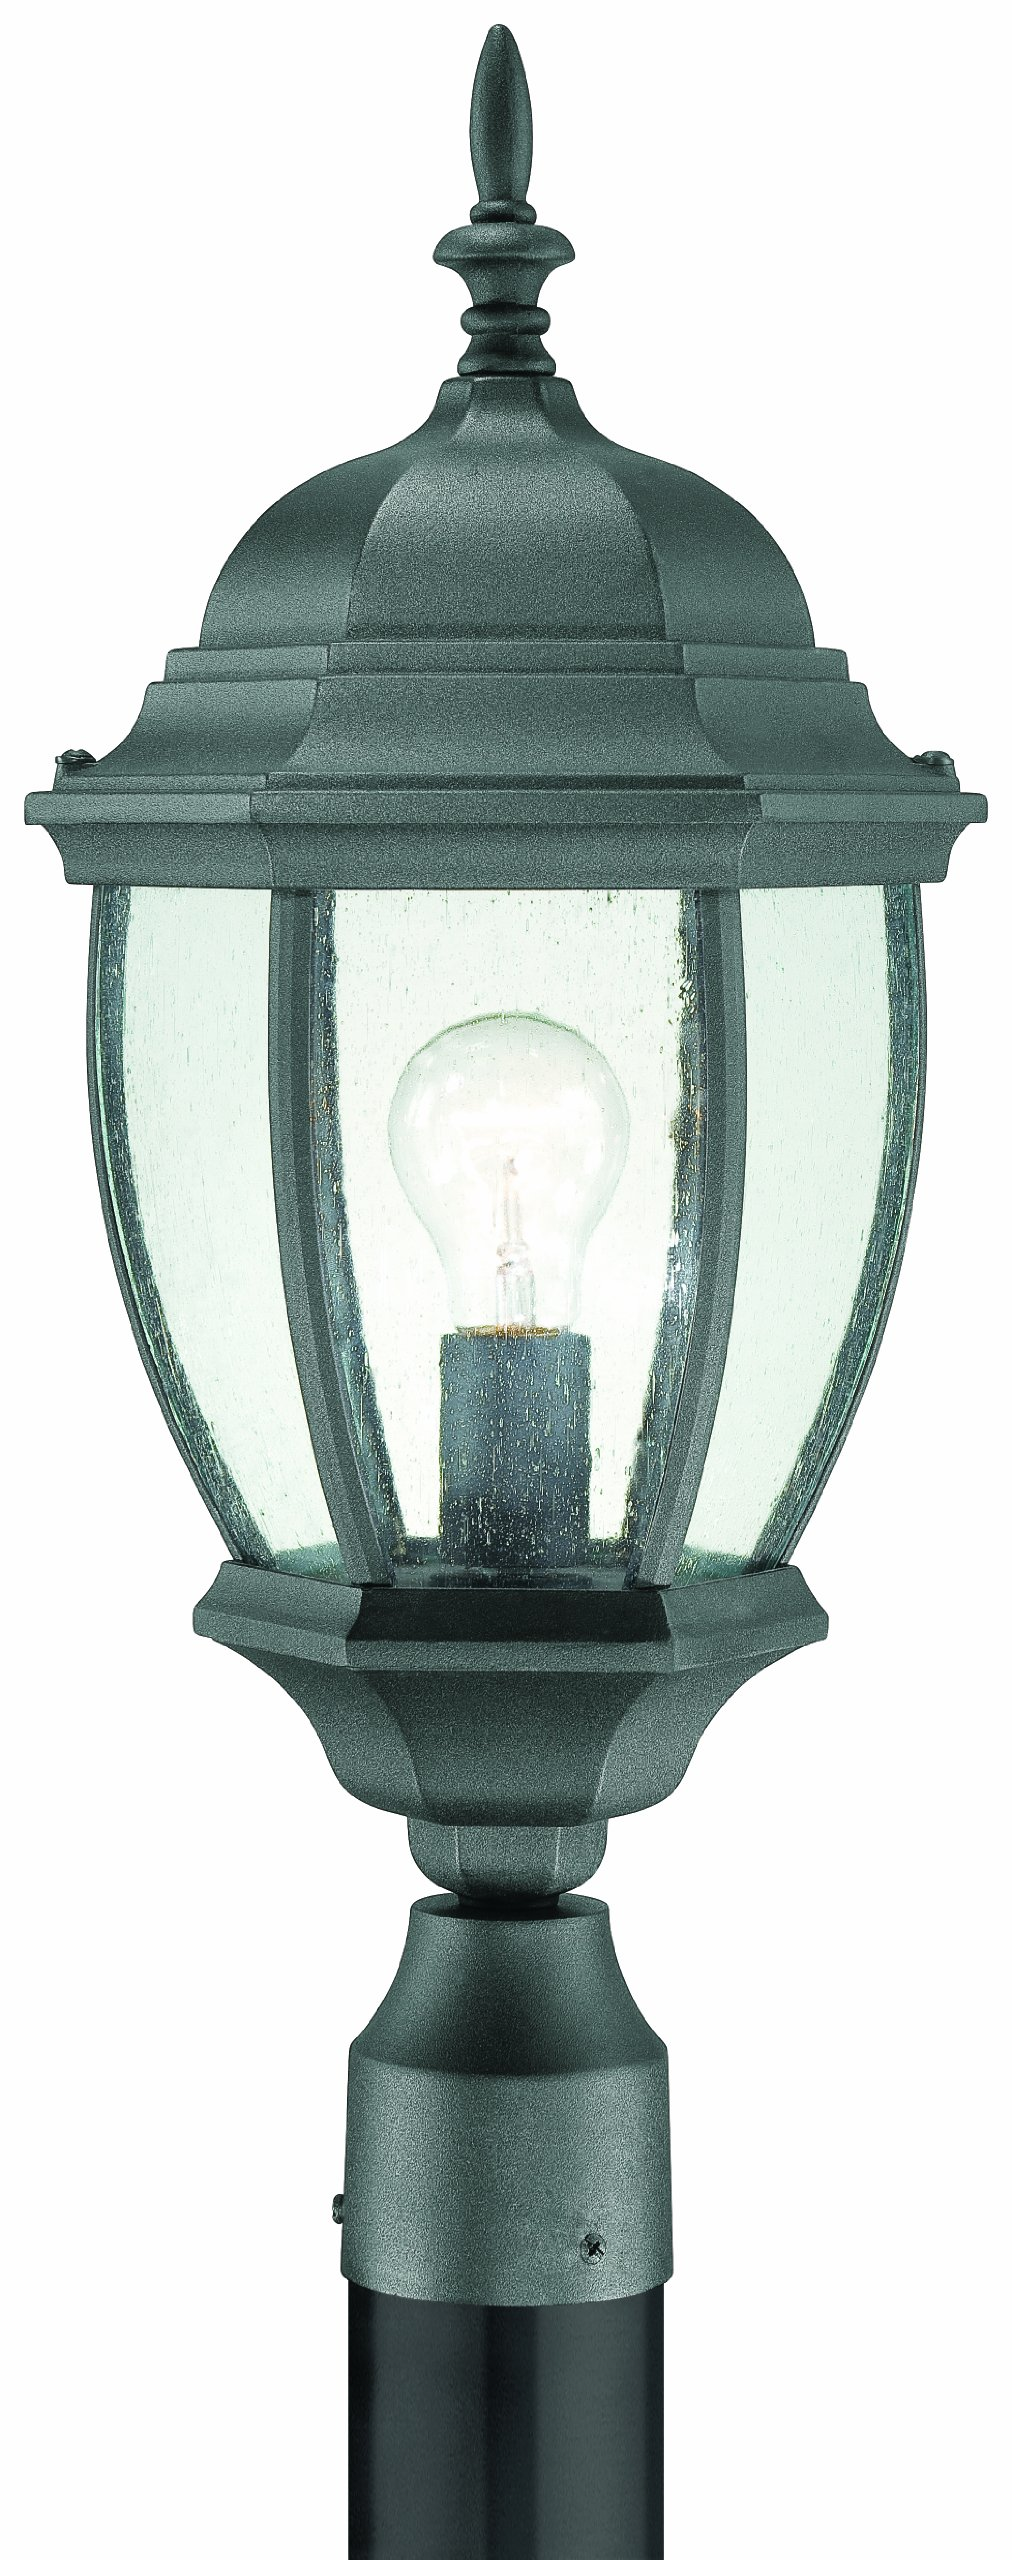 Thomas Lighting SL90107 Covington Outdoor Post Lantern, Black by Thomas Lighting